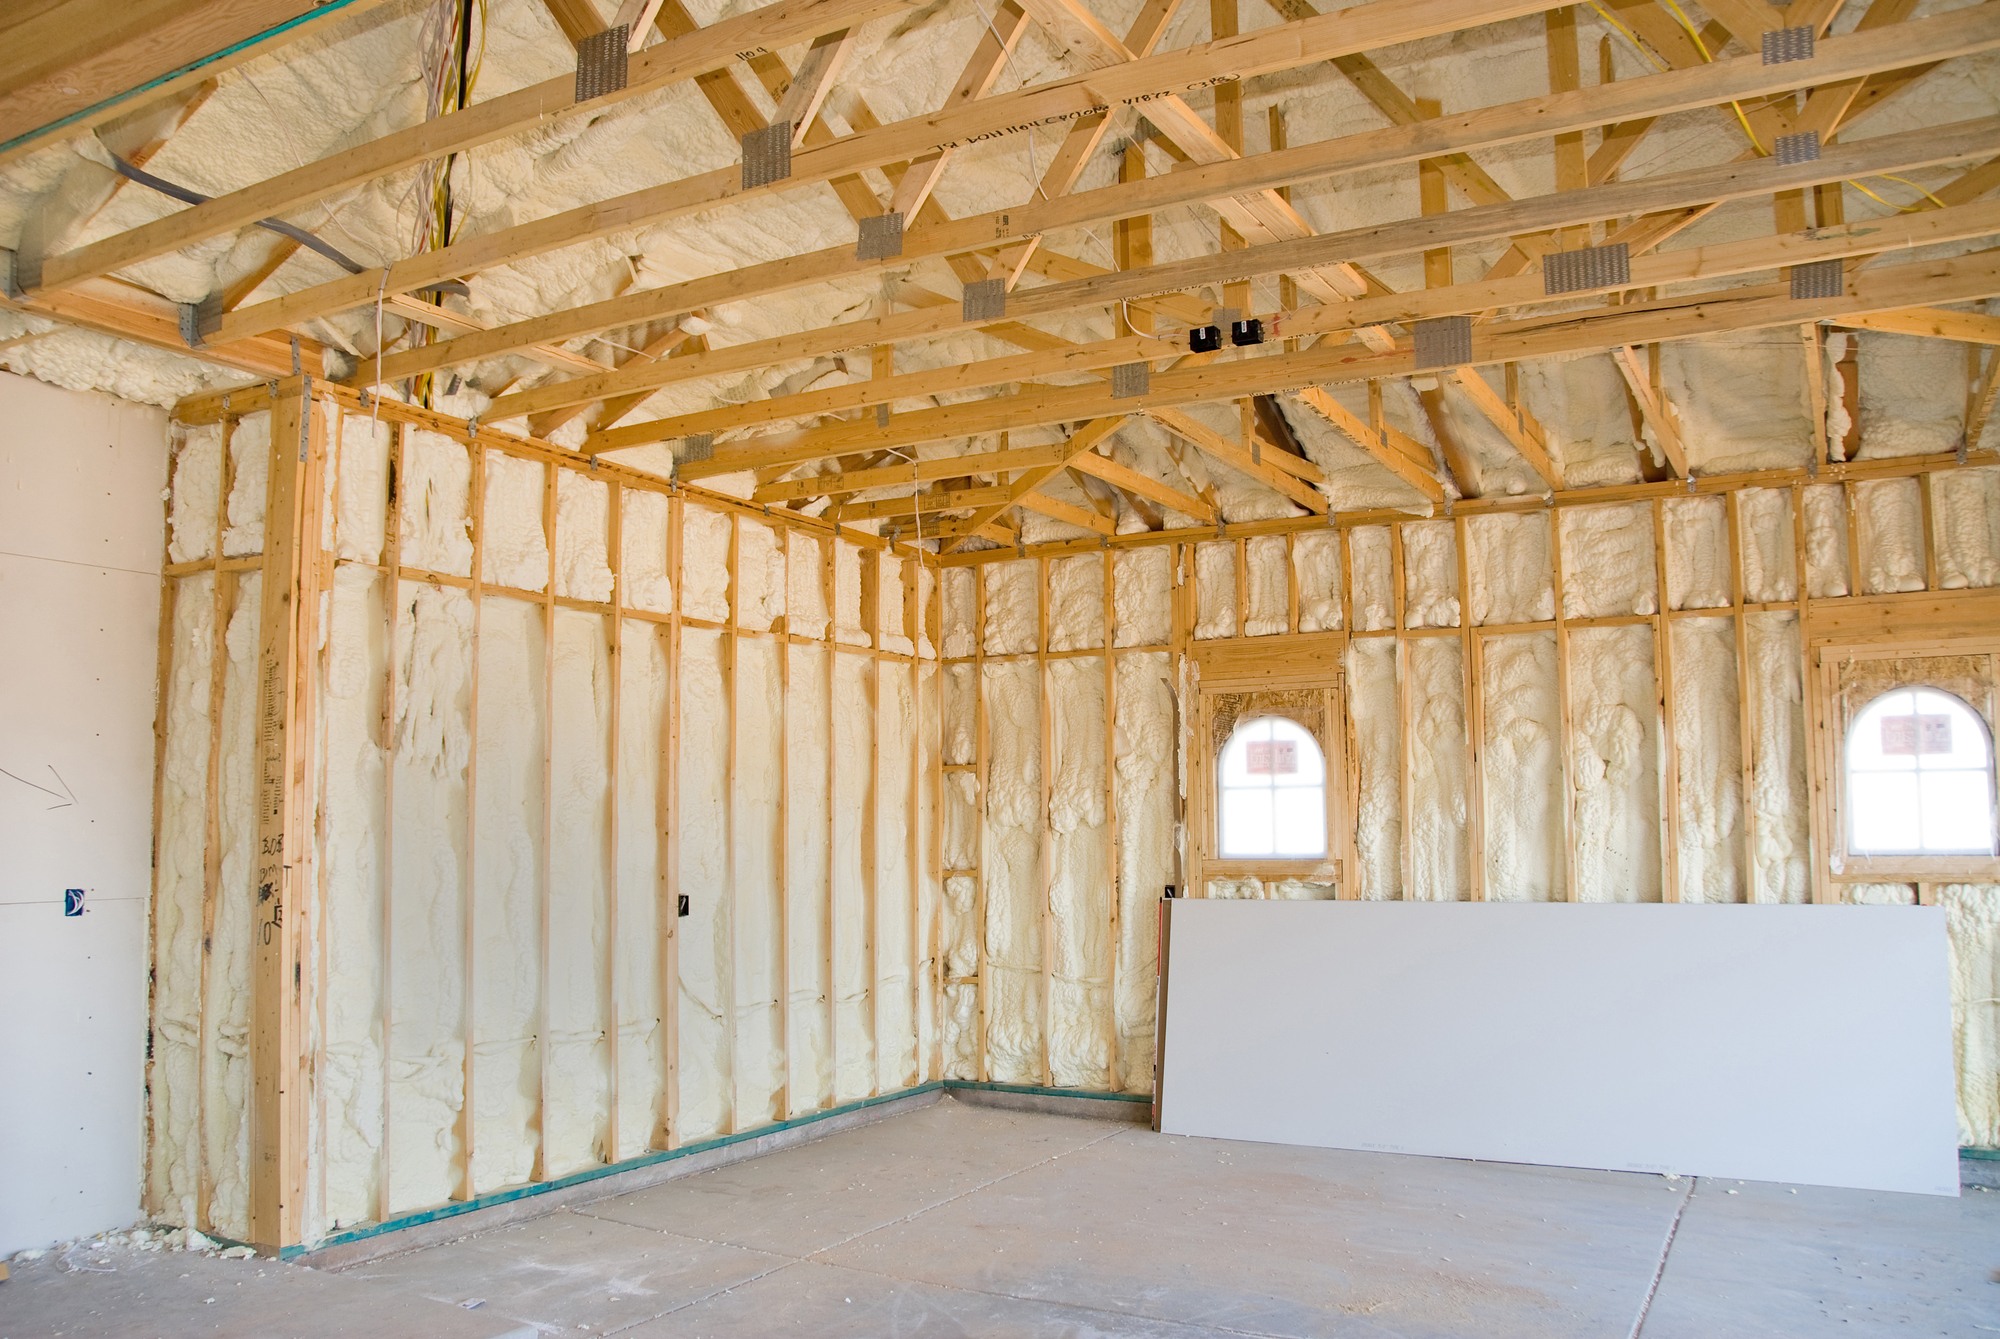 Pole Barn Kits Use Framing Insulation Start The Interior Walls And Ceiling With Lumber Then Insulate Area Spray Foam